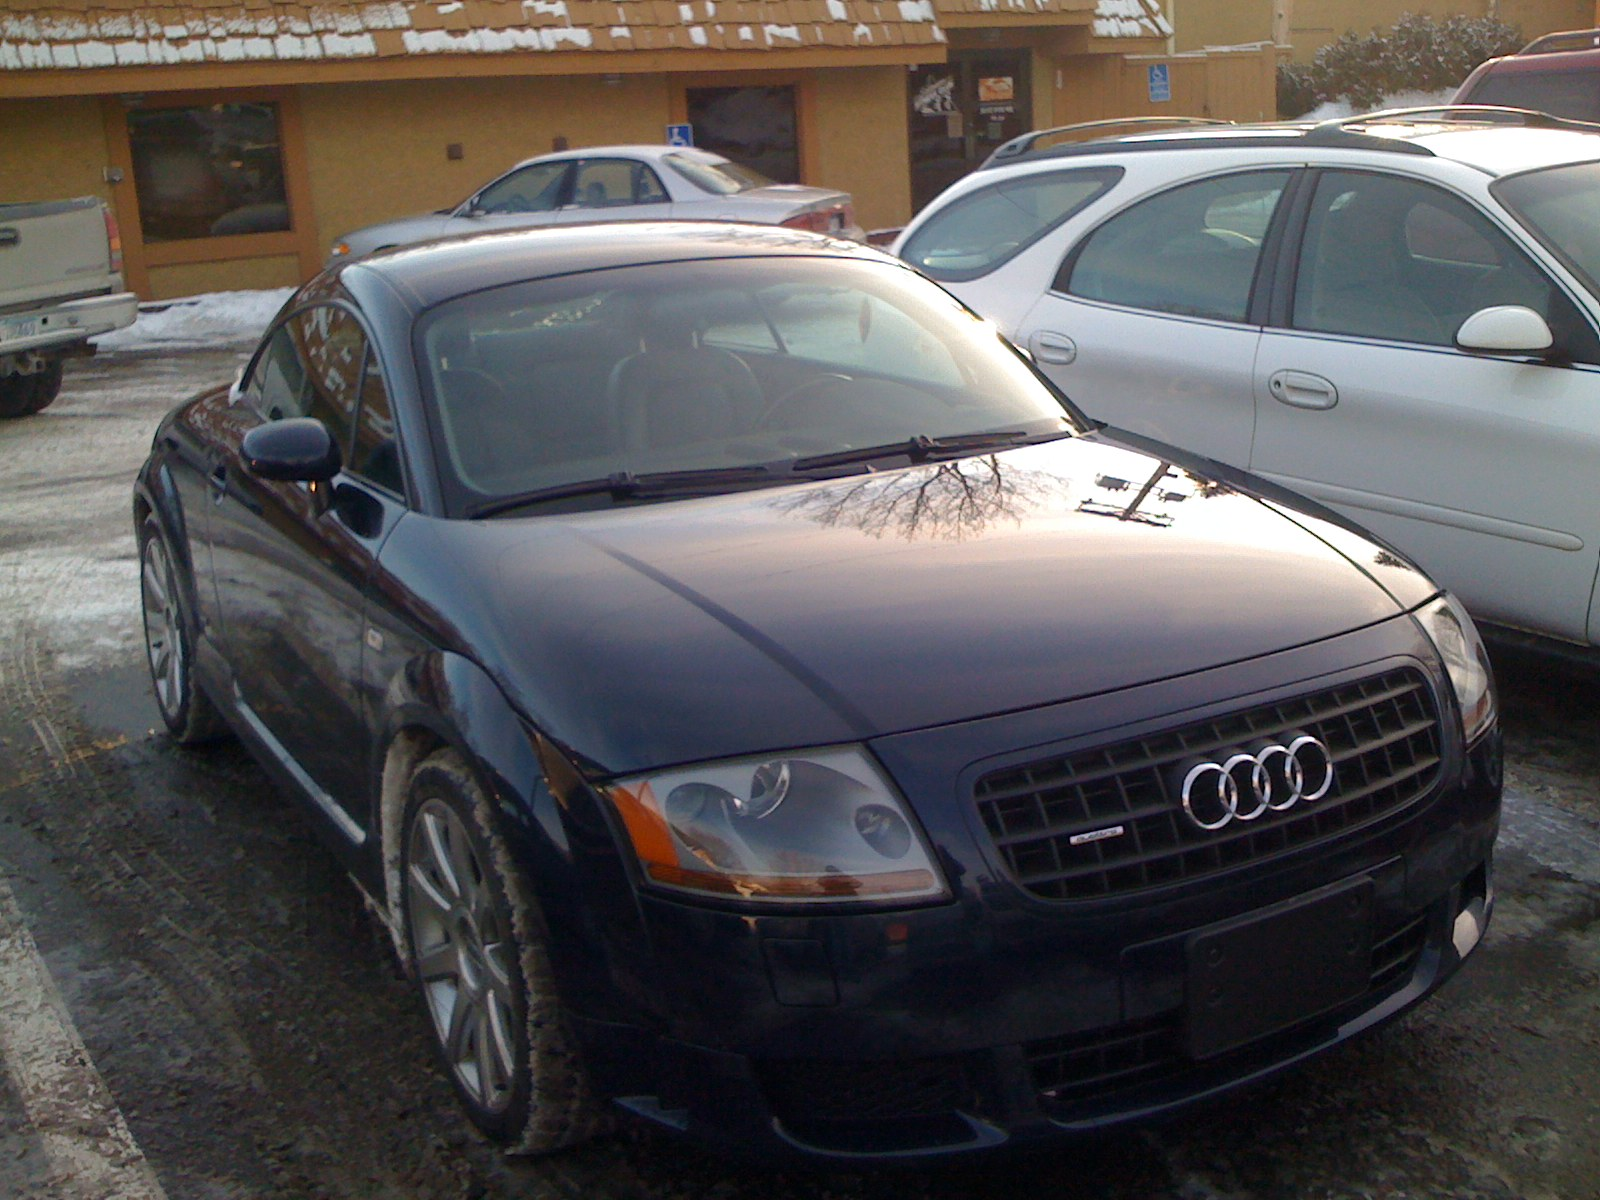 2004 audi tt information and photos zombiedrive. Black Bedroom Furniture Sets. Home Design Ideas